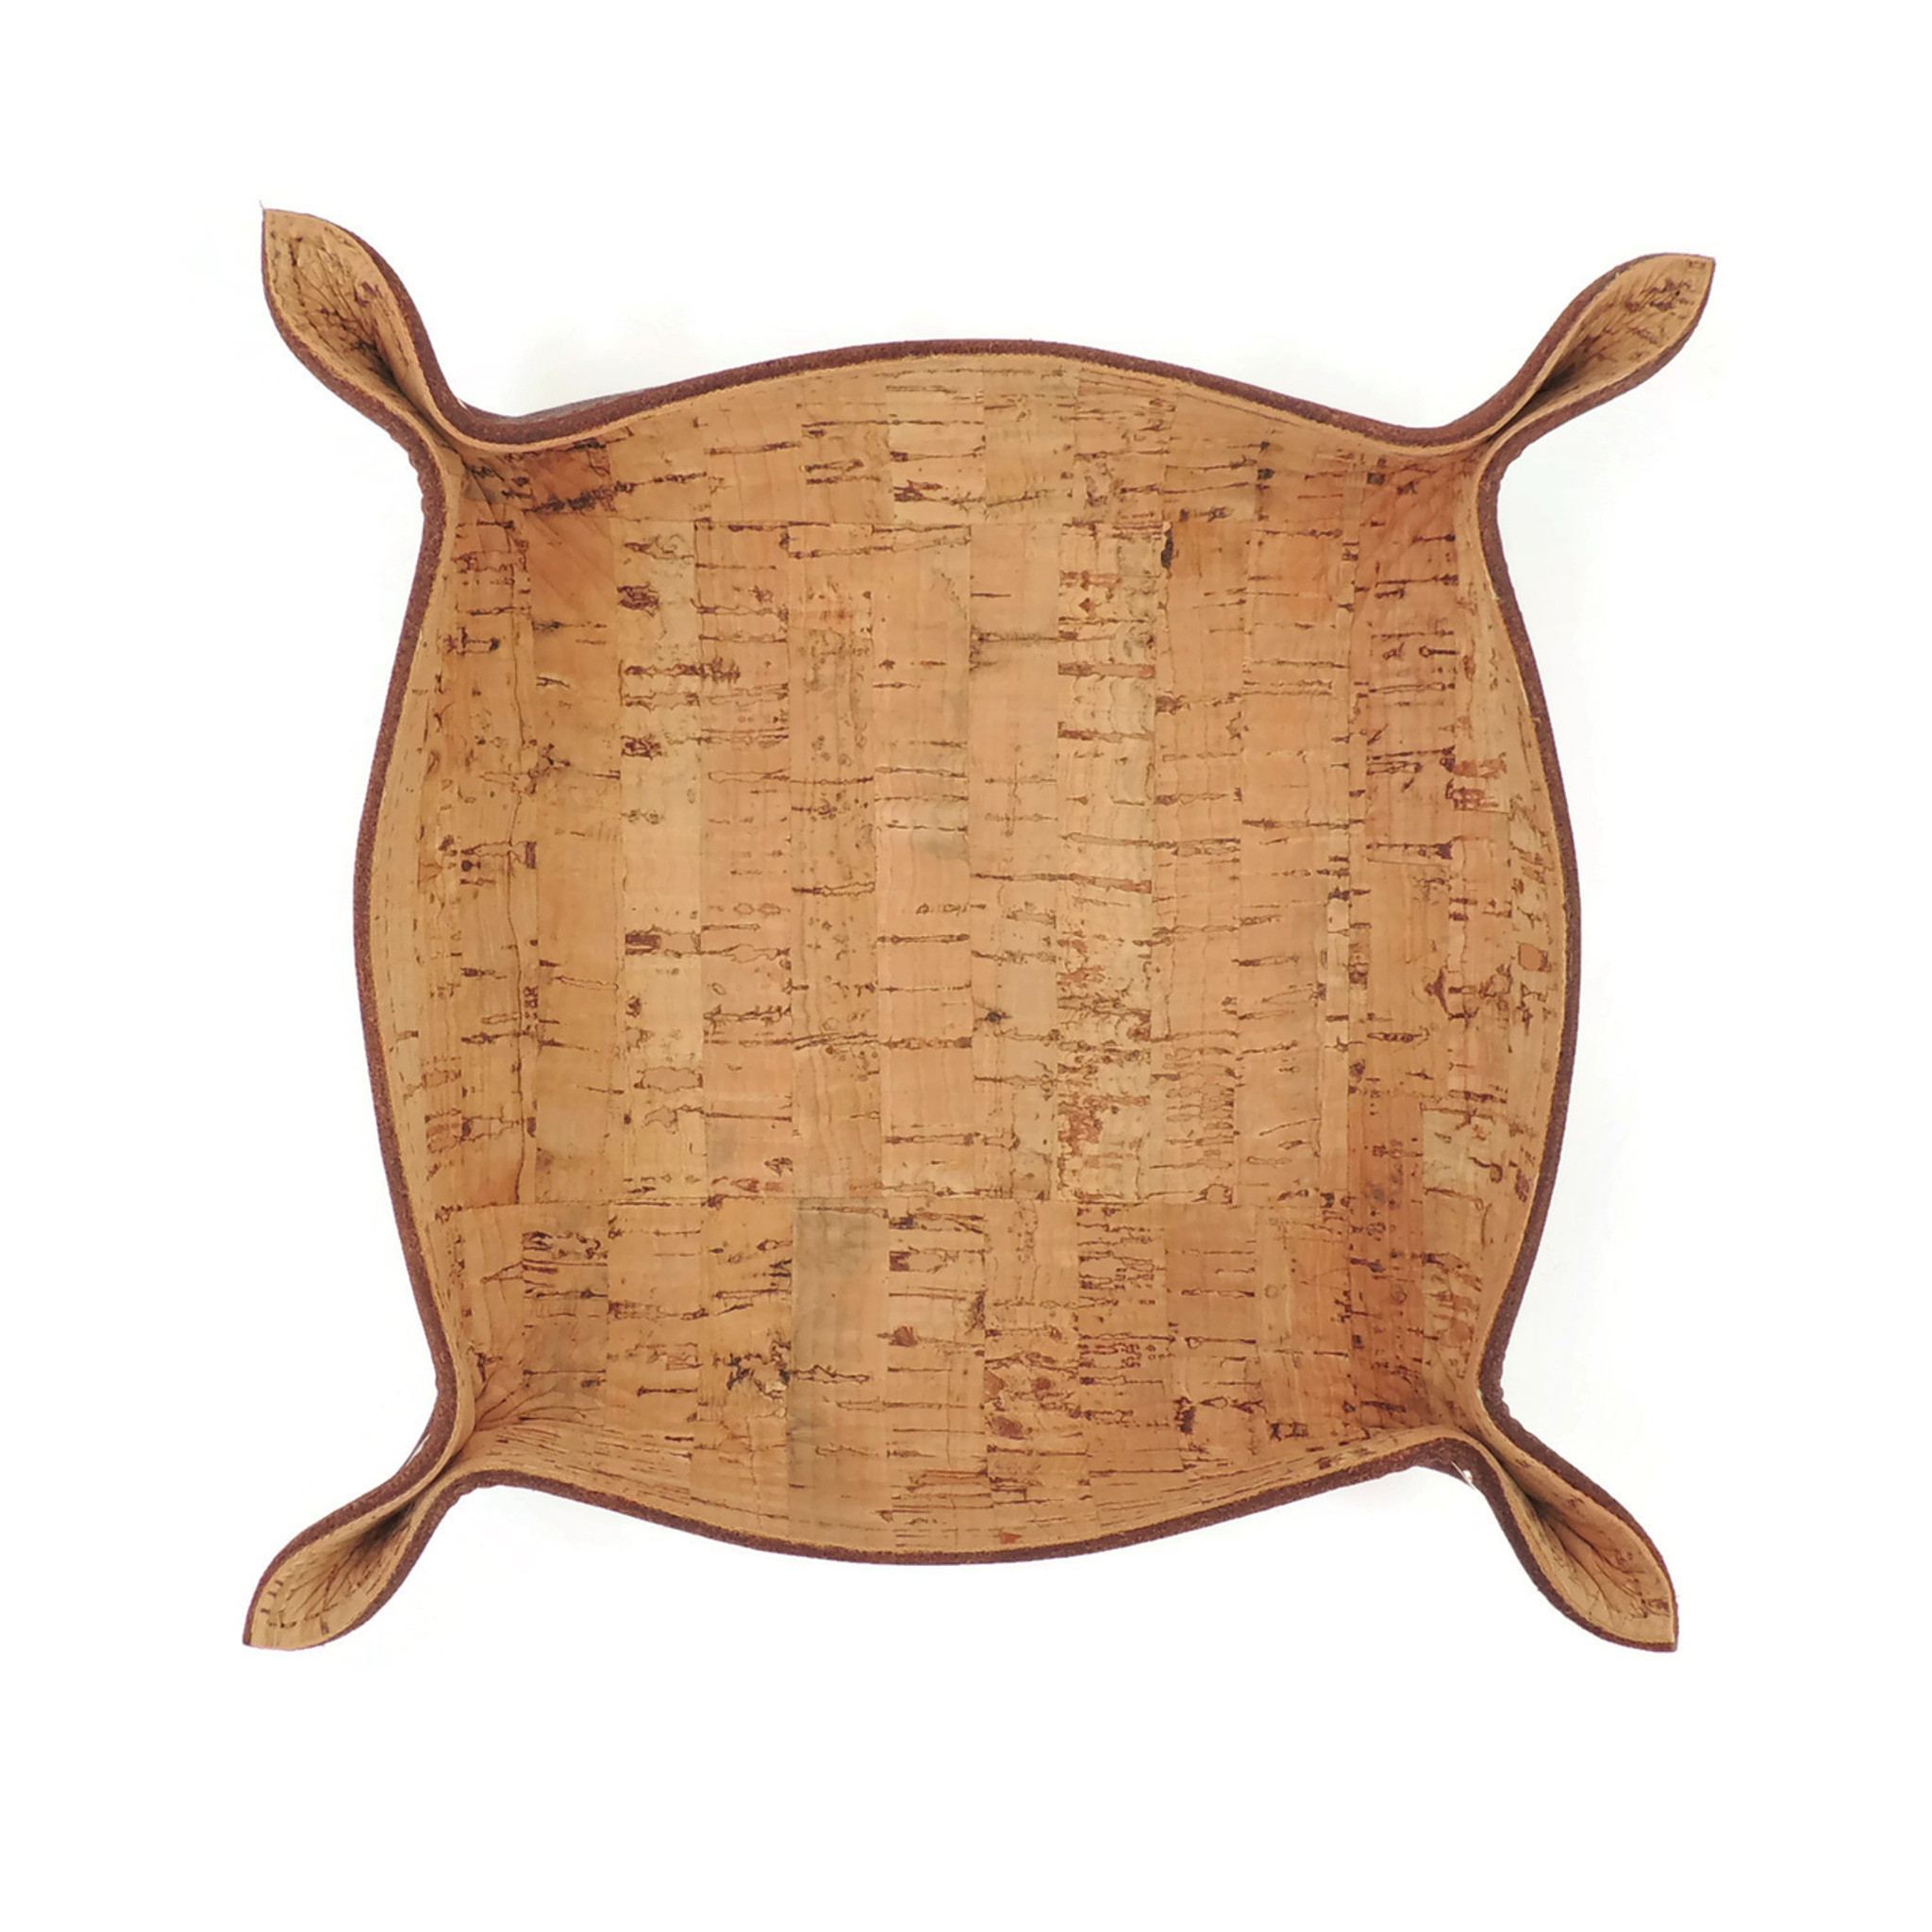 Leather Catchall Tray with Cork Dash